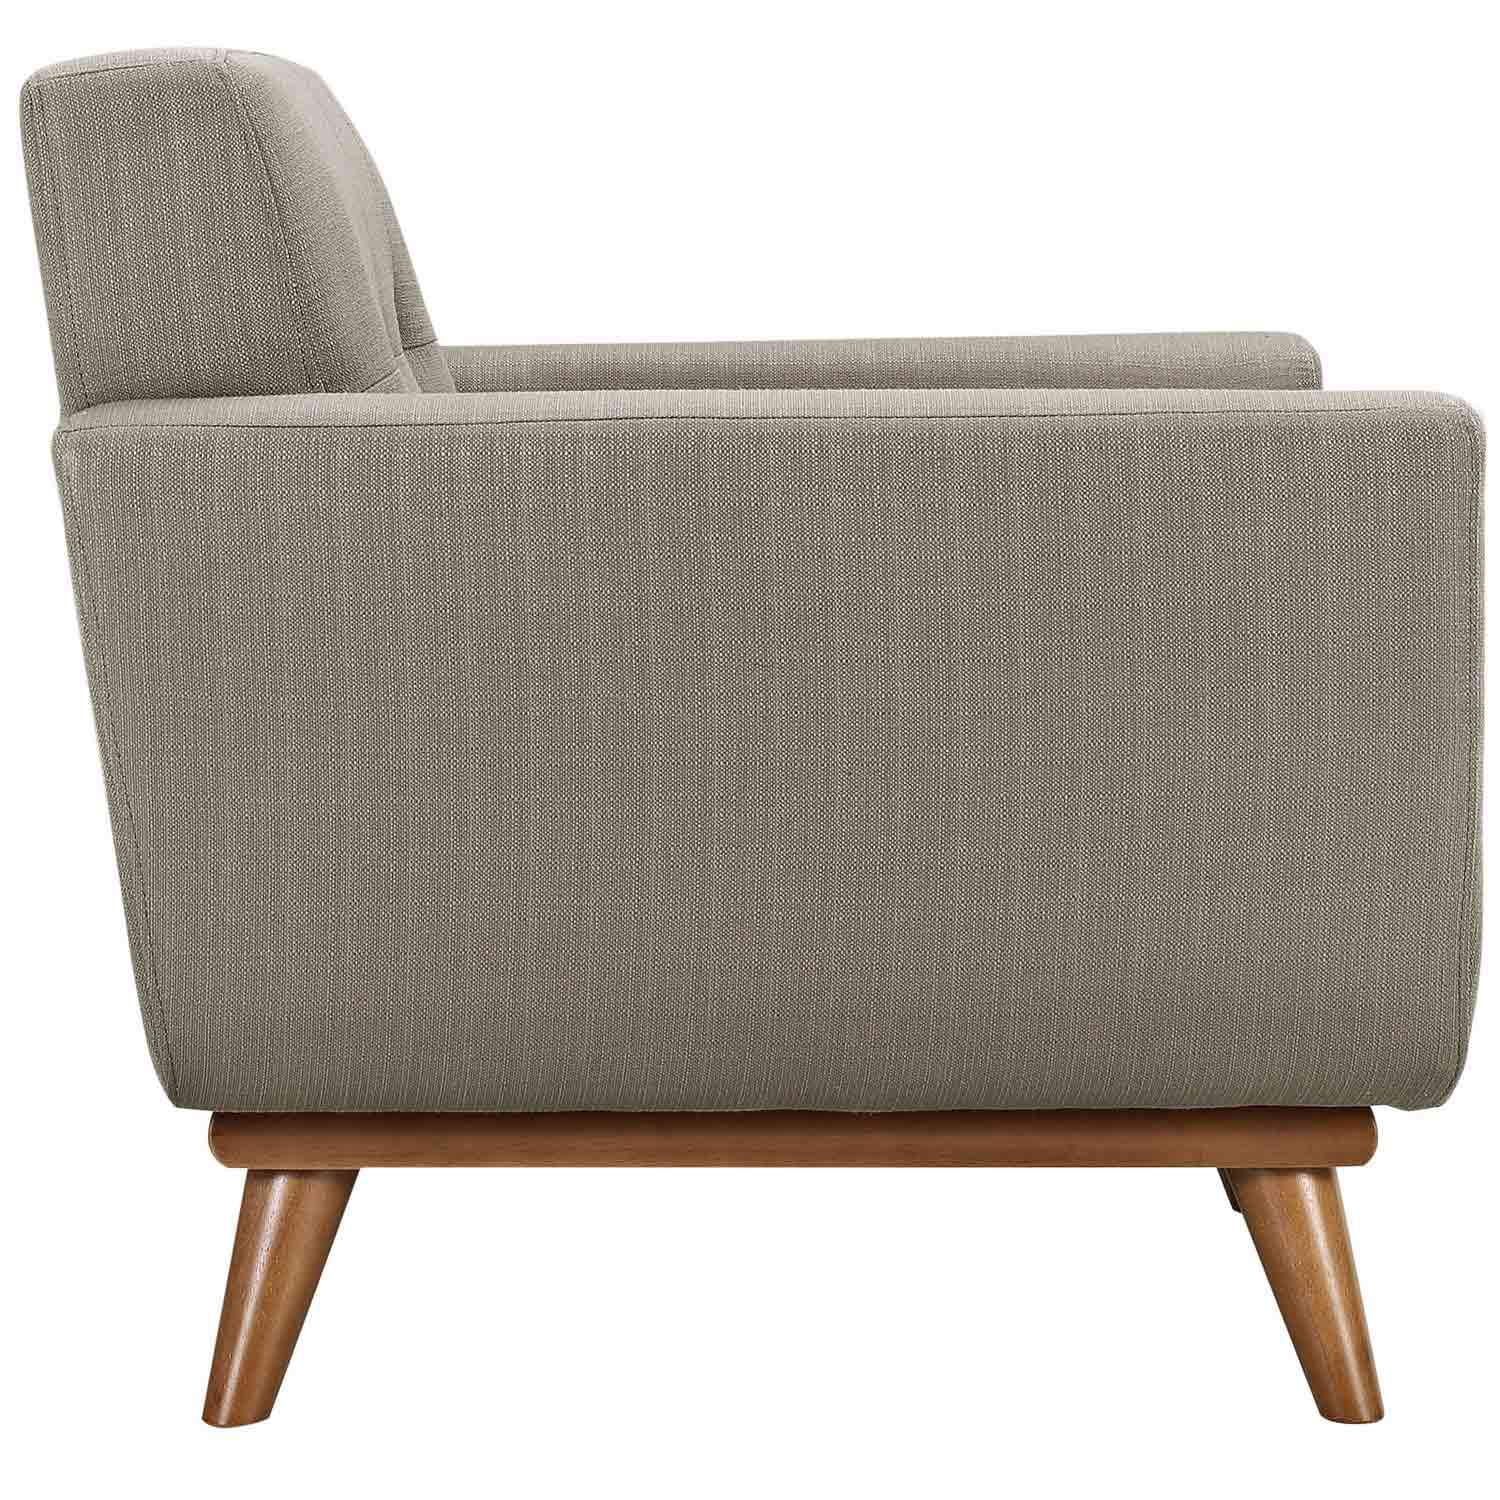 Modway Engage Armchair Wood Set of 2 - Granite